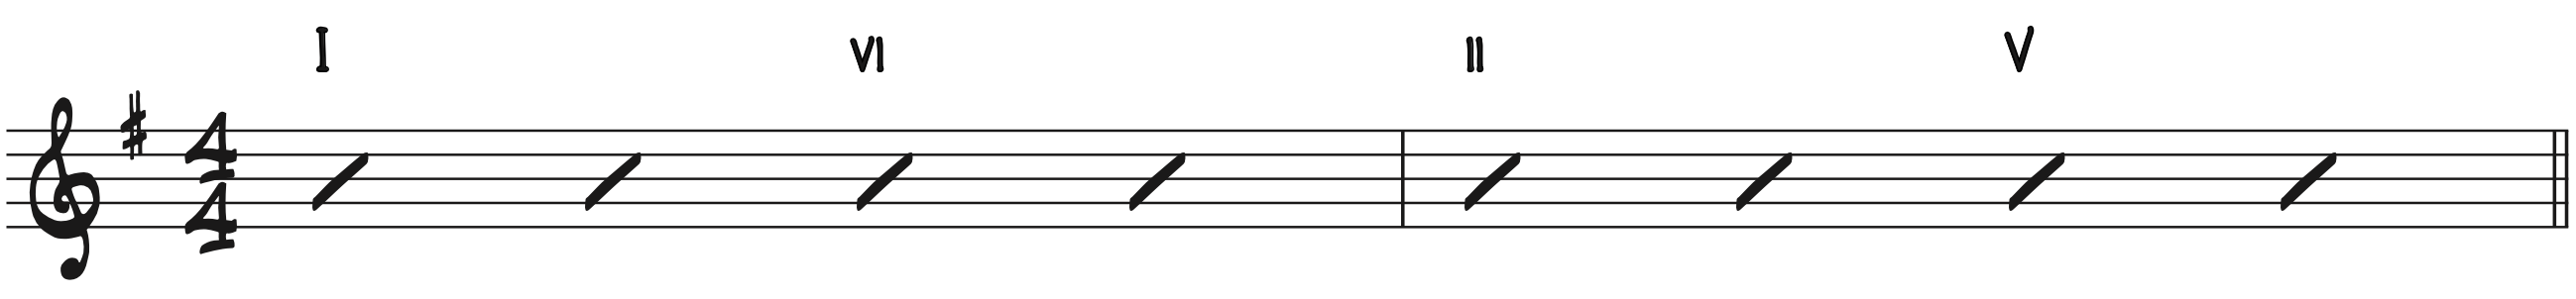 The Turnaround Progression 1-6-2-5 Roman Numerals as used in Have Yourself A Merry Little Christmas Piano Accompaniment